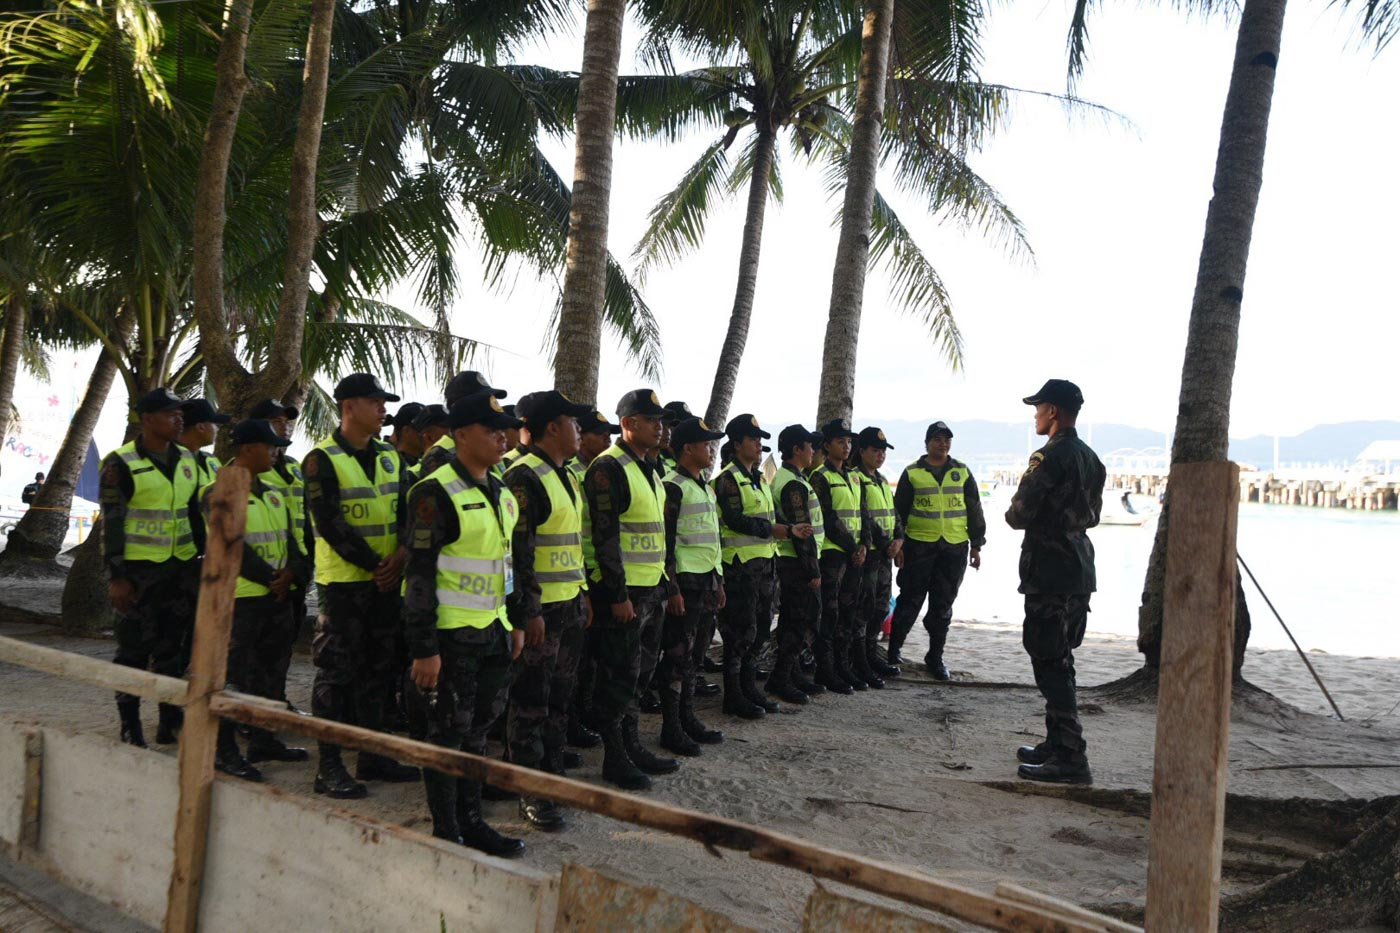 CLOSING AN ISLAND. Police personnel prepare for the opening of Boracay after its 6-month closure. File photo by Alecs Ongcal/Rappler